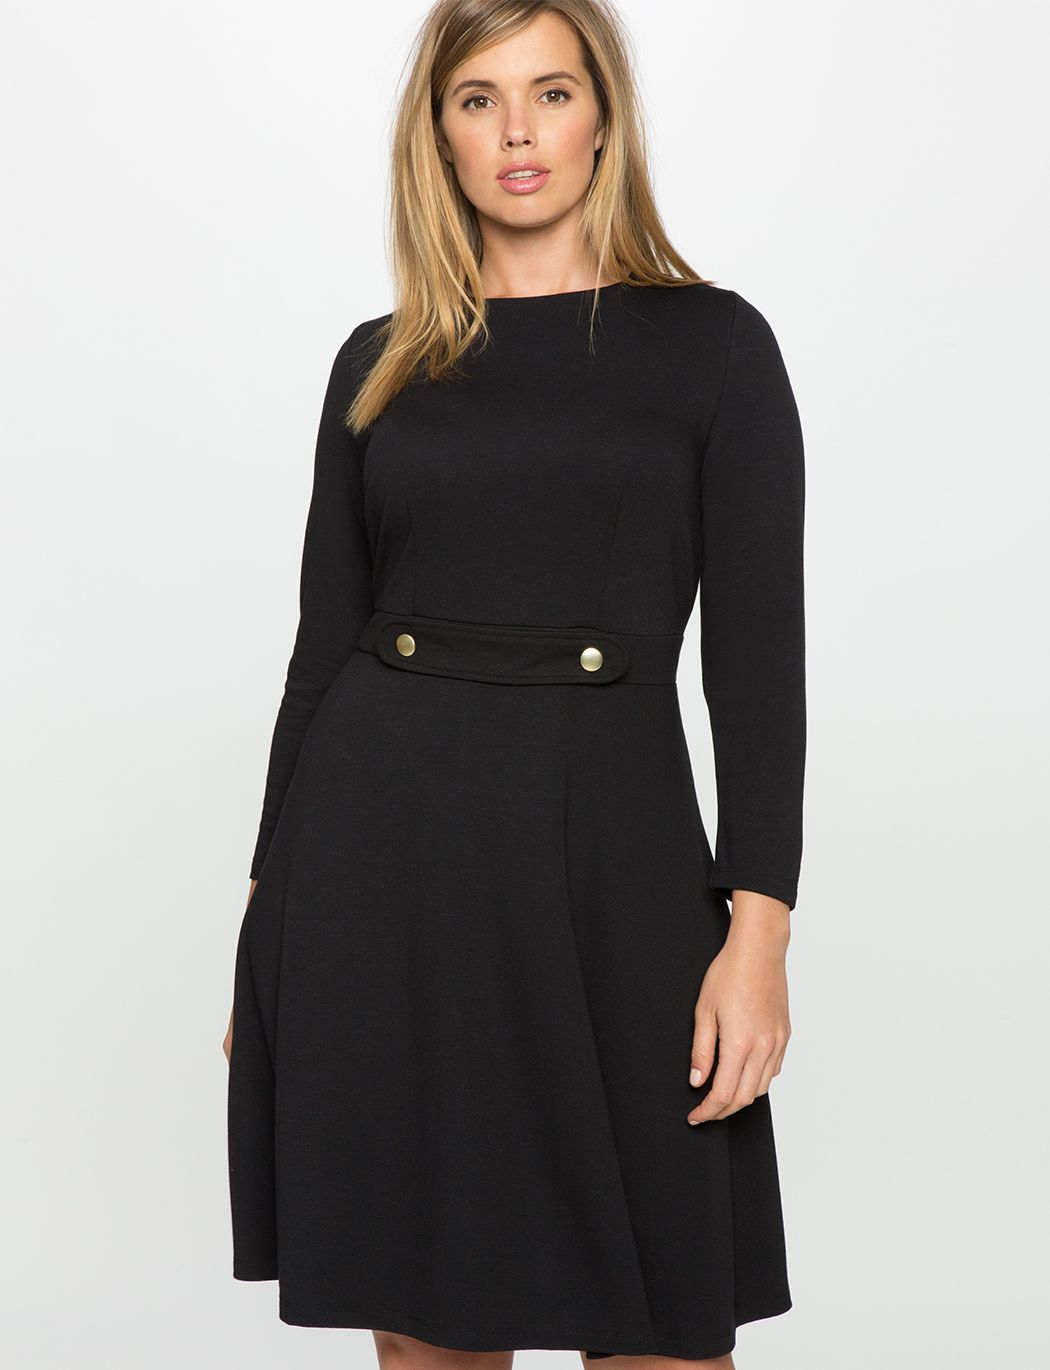 Long Sleeve Fit And Flare Dress With Button Detail Women S Plus Size Dresses Eloquii Plus Size Dress Outfits Fit And Flare Dress Flare Dress [ 1370 x 1050 Pixel ]